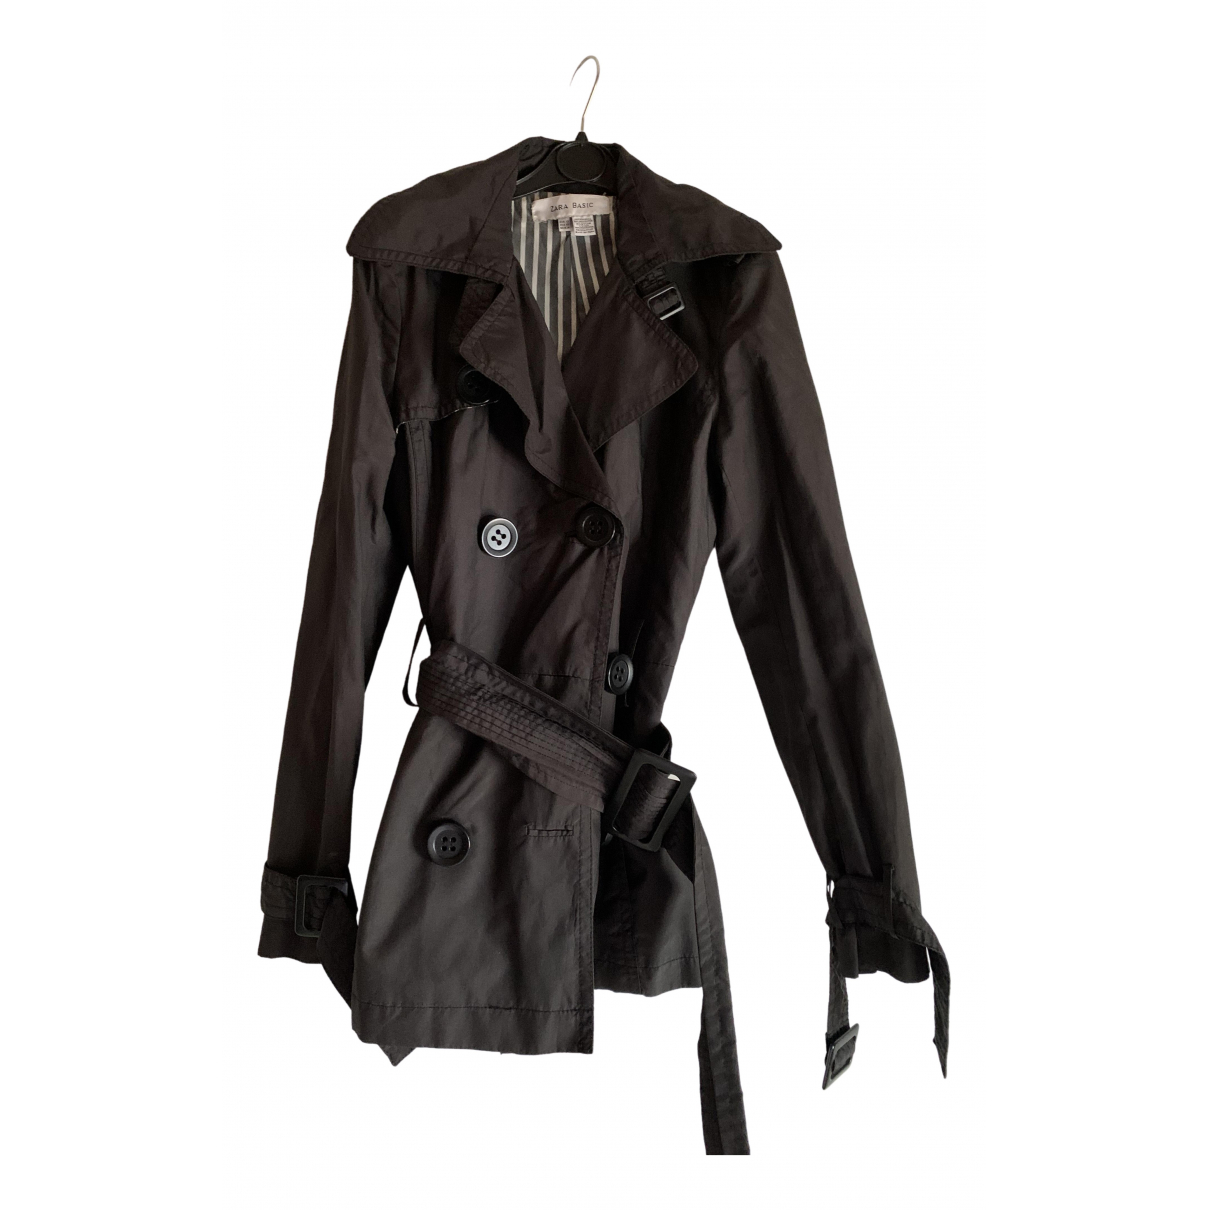 Zara \N Brown Trench coat for Women XS International